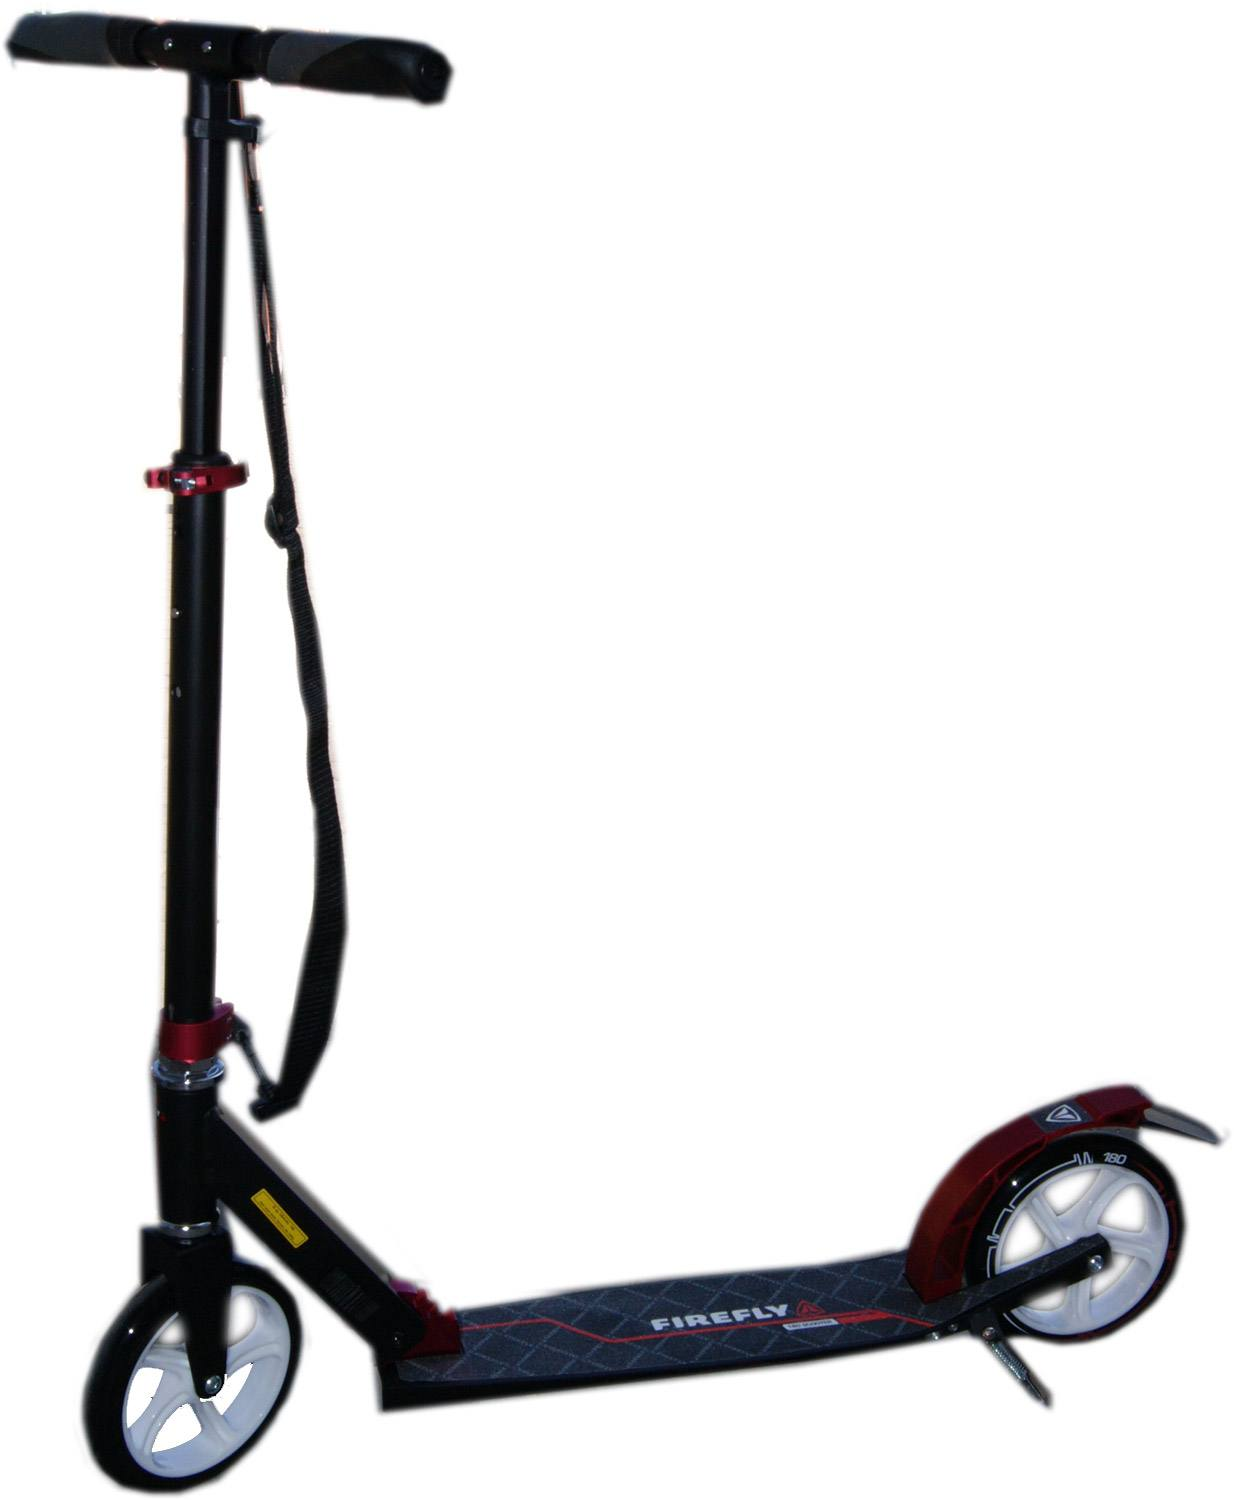 firefly-scooter-sold-180-farbe-900-schwarz-rot-